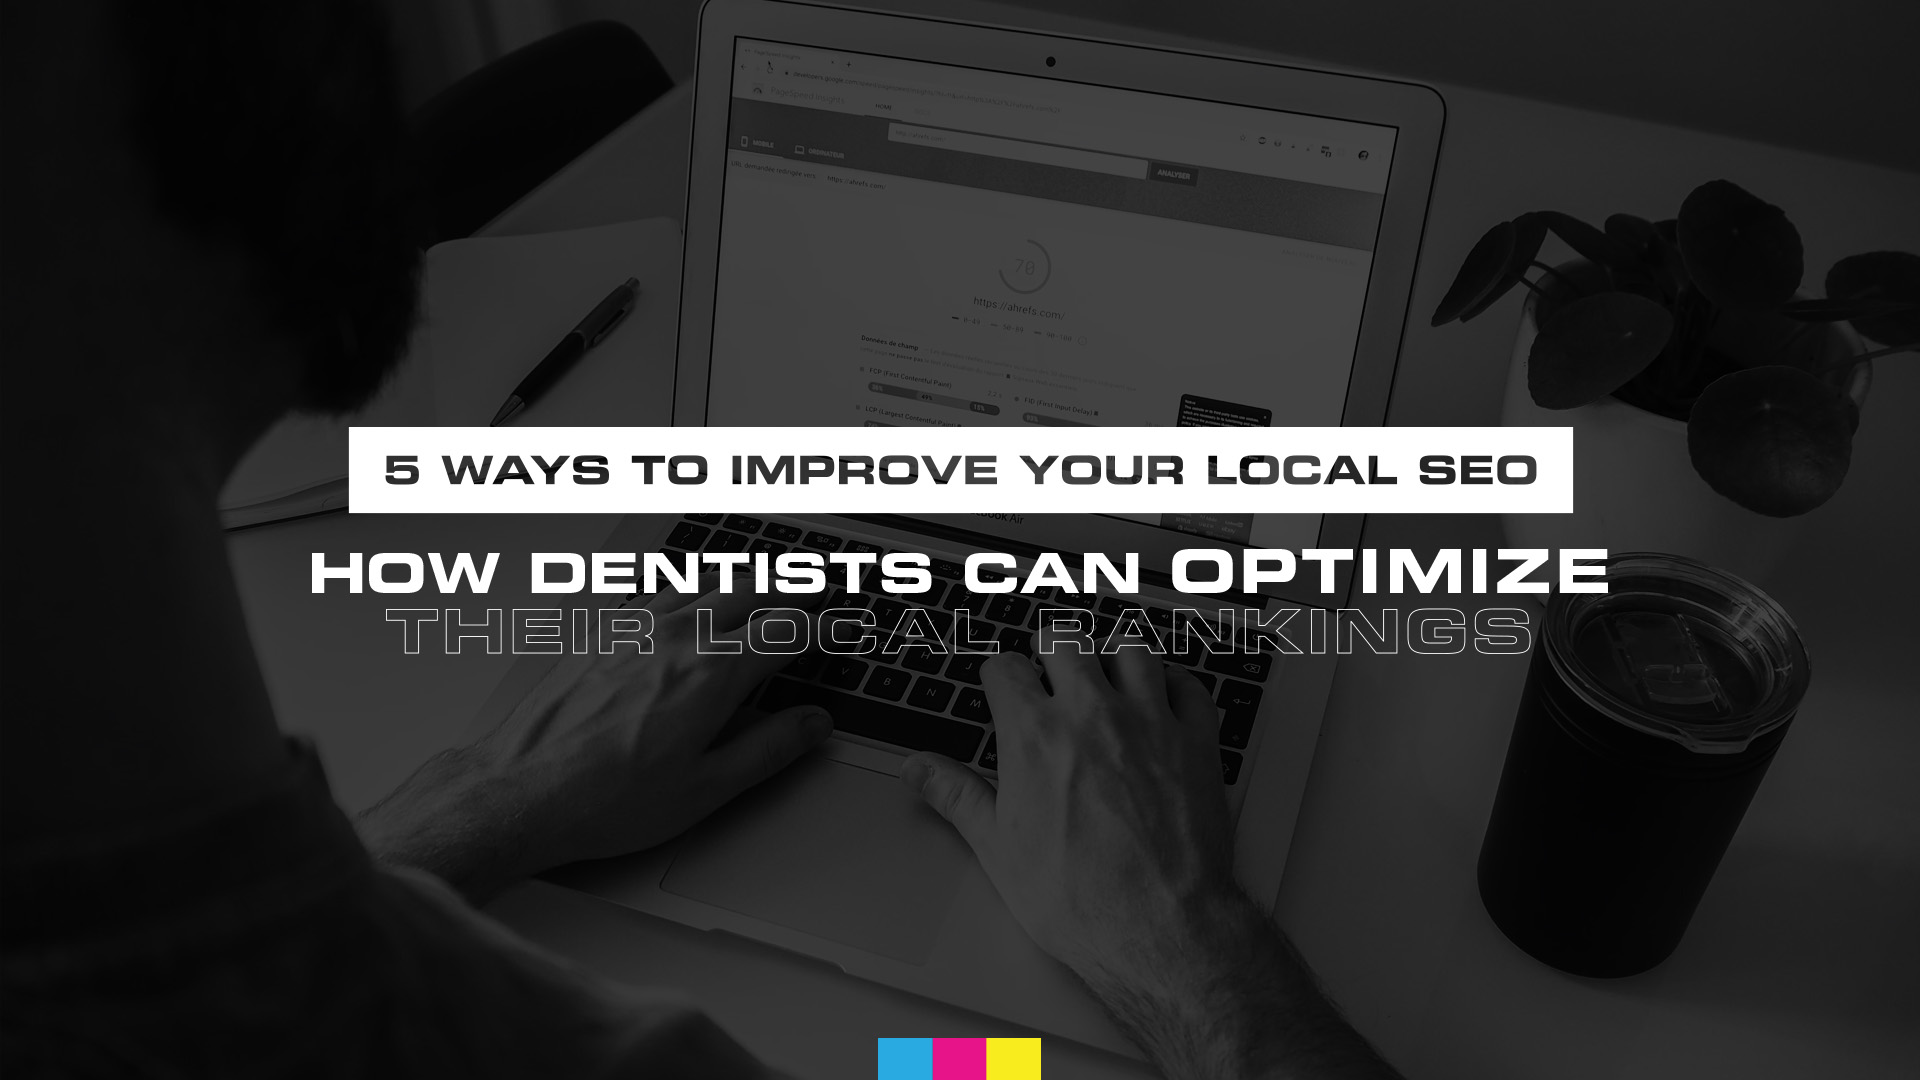 5 Ways to Improve Your Local SEO